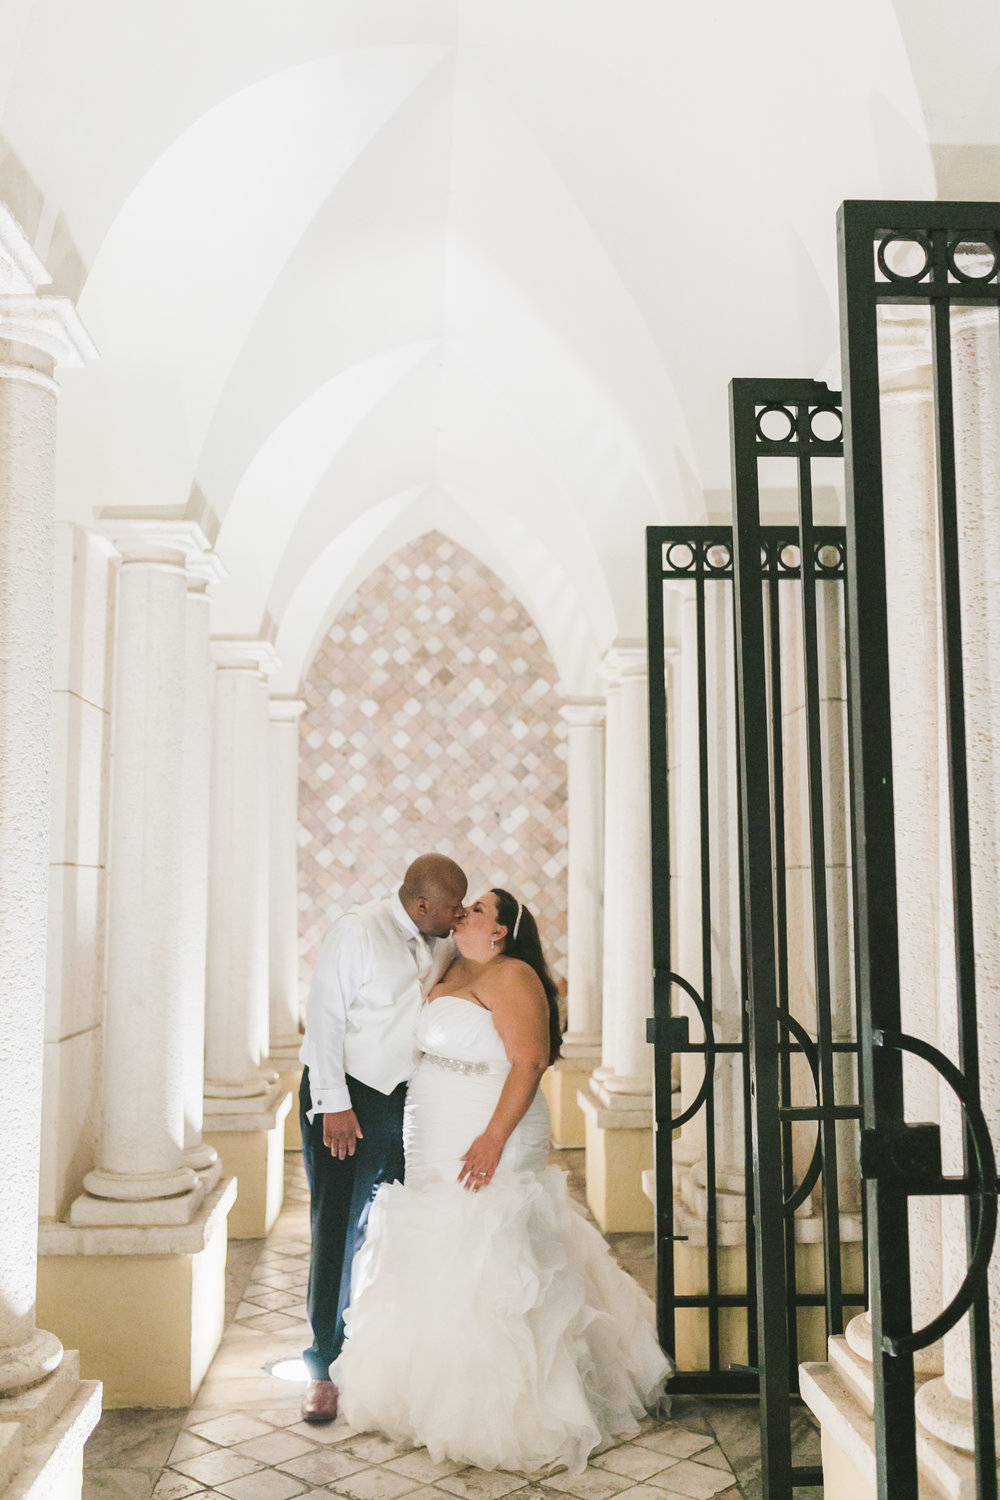 South Florida - Miami - Fort Lauderdale - Wedding Photographer - Anna Eli Photography - Reviews - The Addison - Boca.jpg